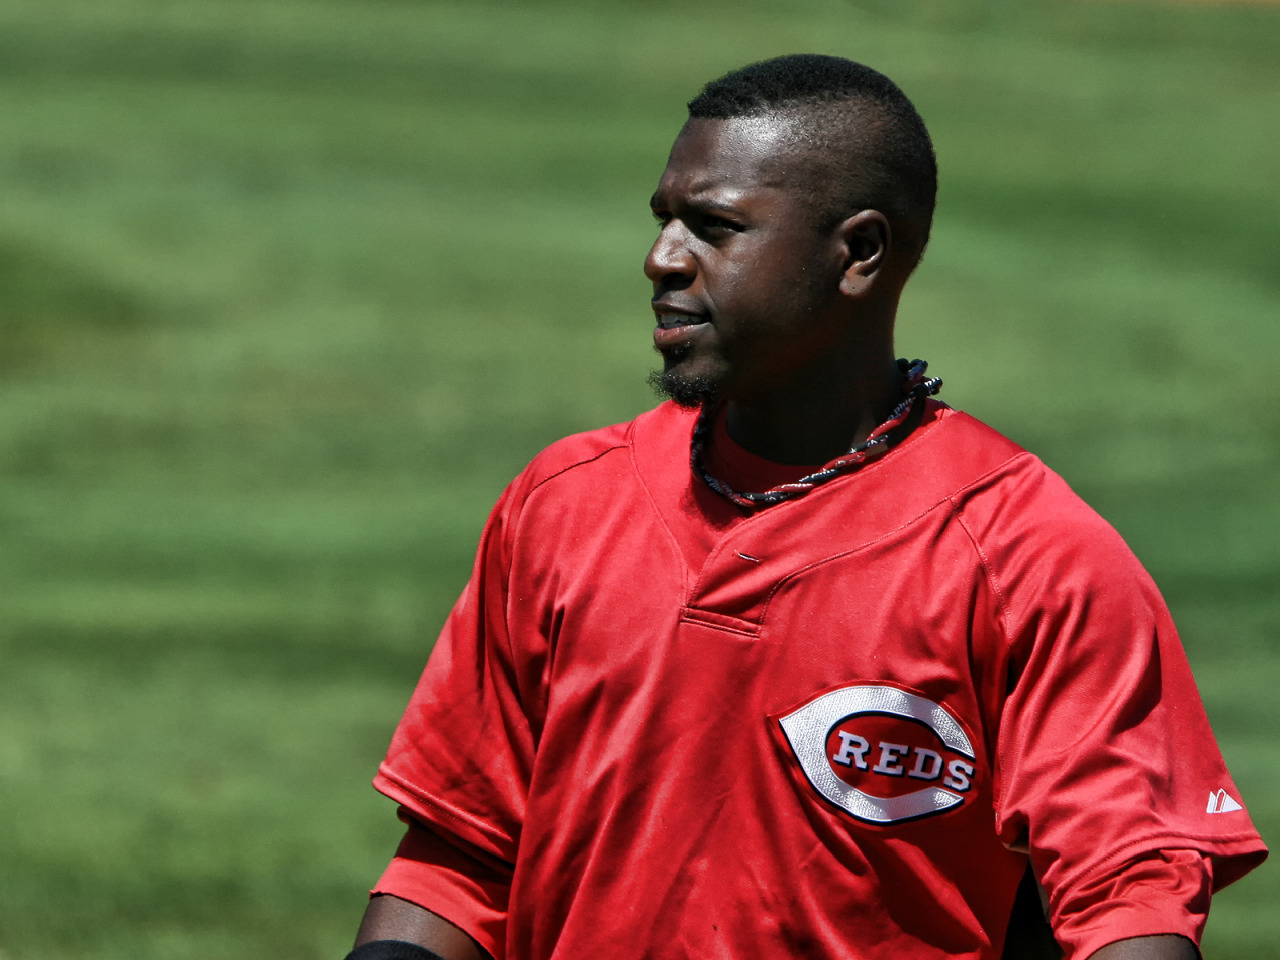 Brandon Phillips March 2008 - Cincinnati Reds second baseman Brandon Phillips.